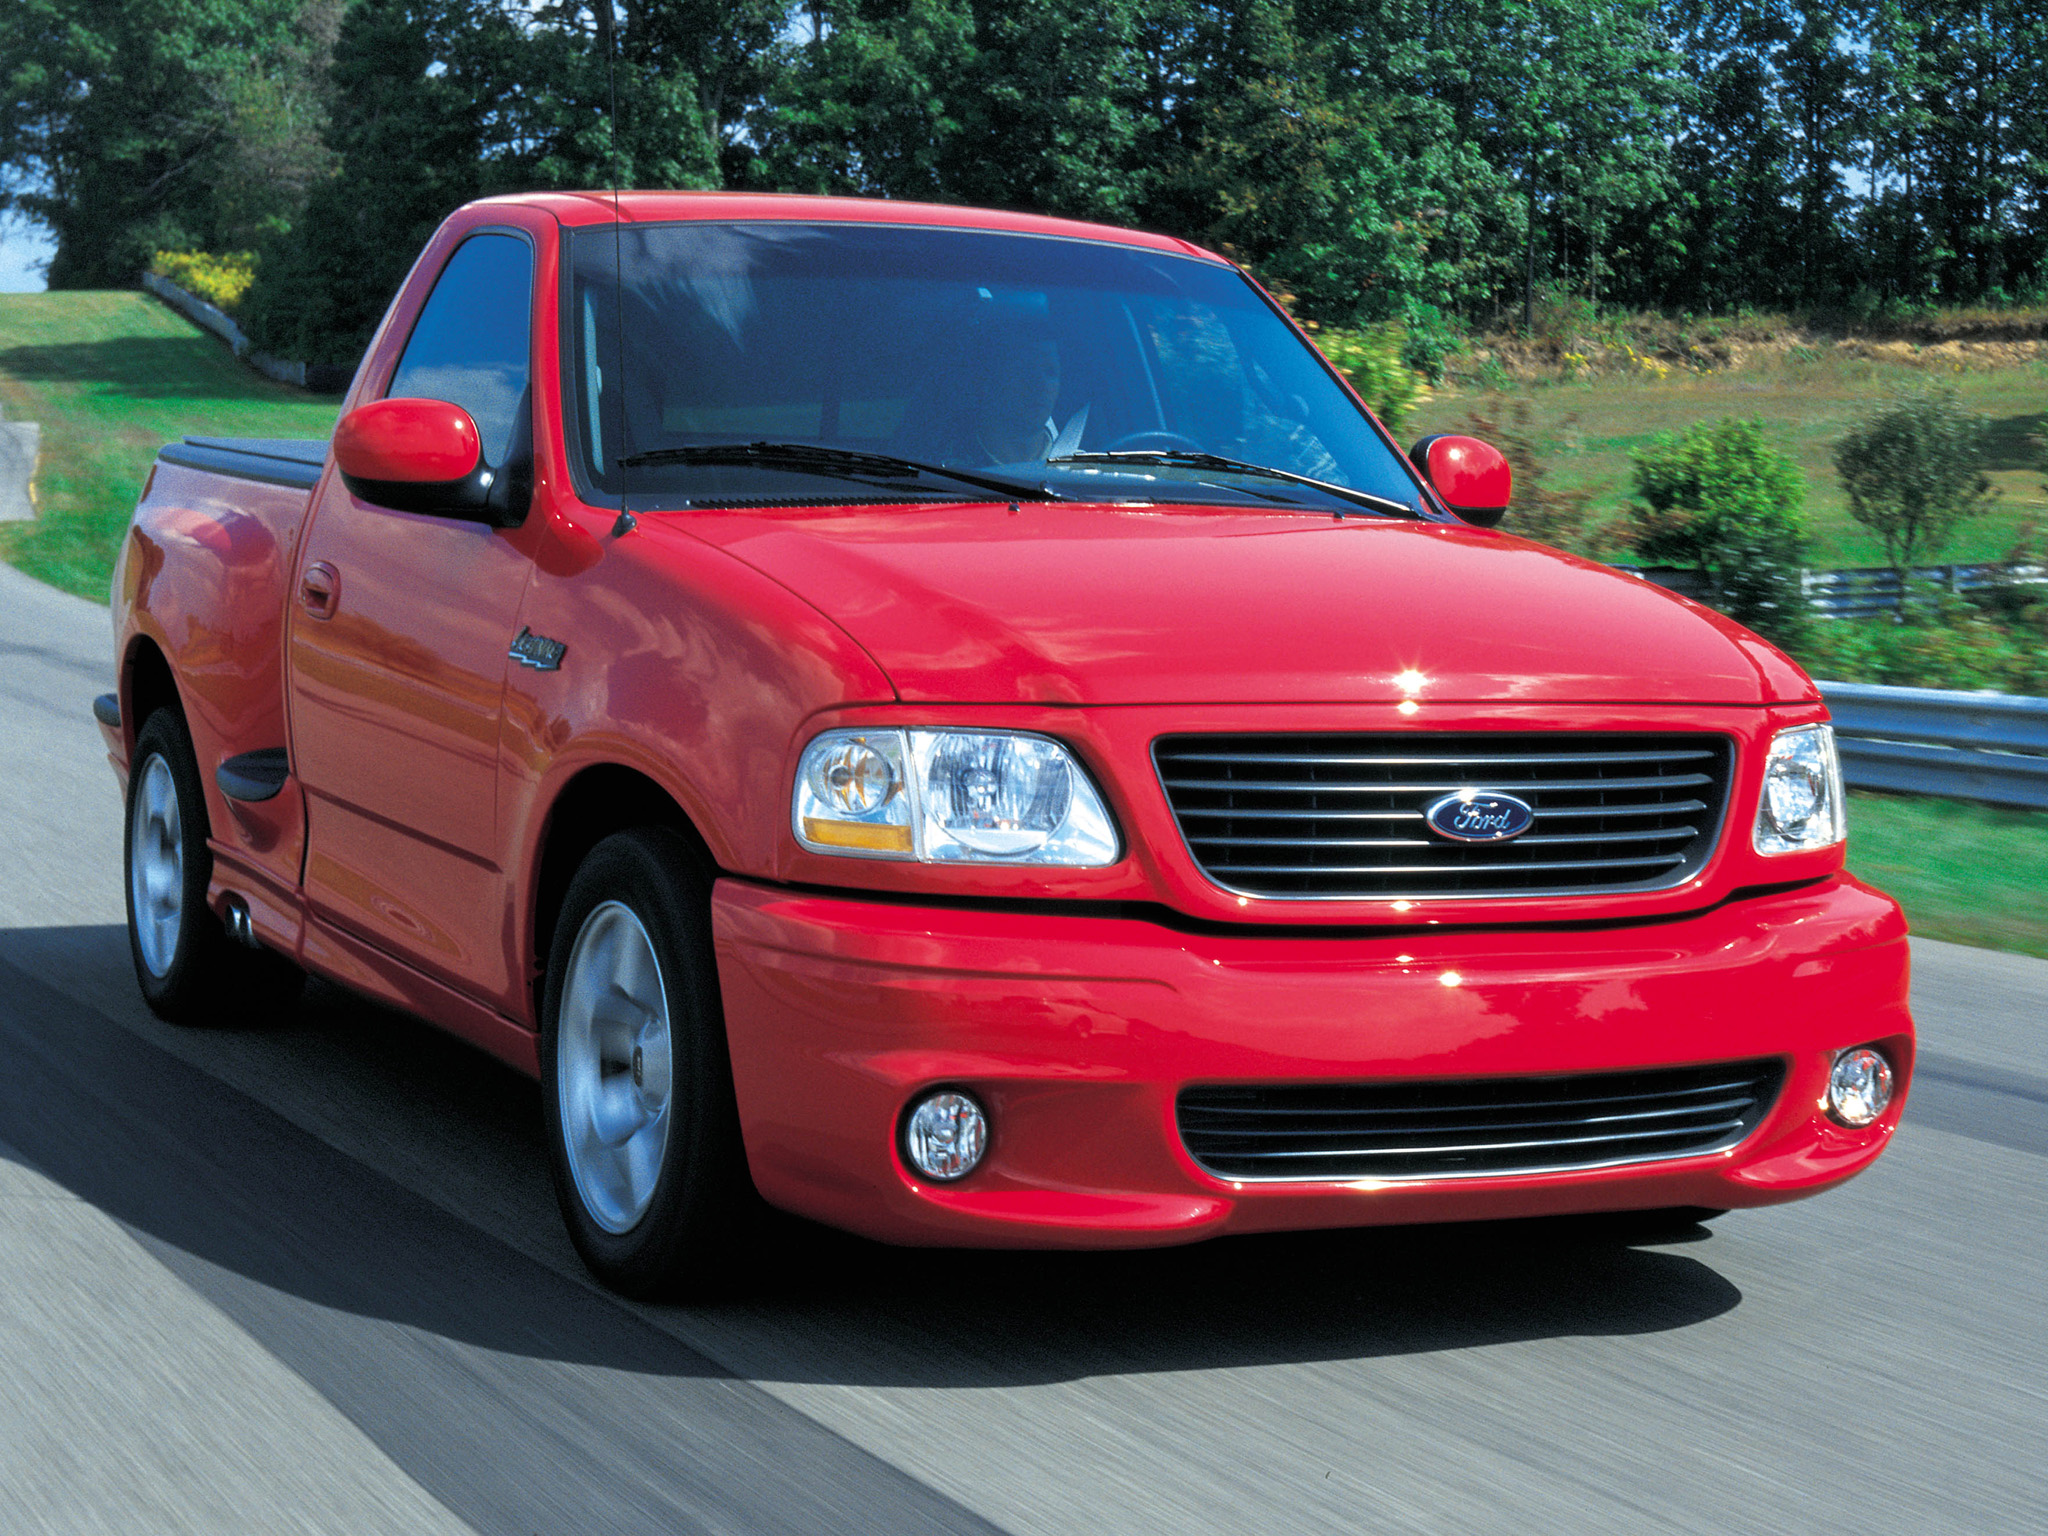 Ford Lightning Wallpaper 44 Wallpapers Adorable Wallpapers